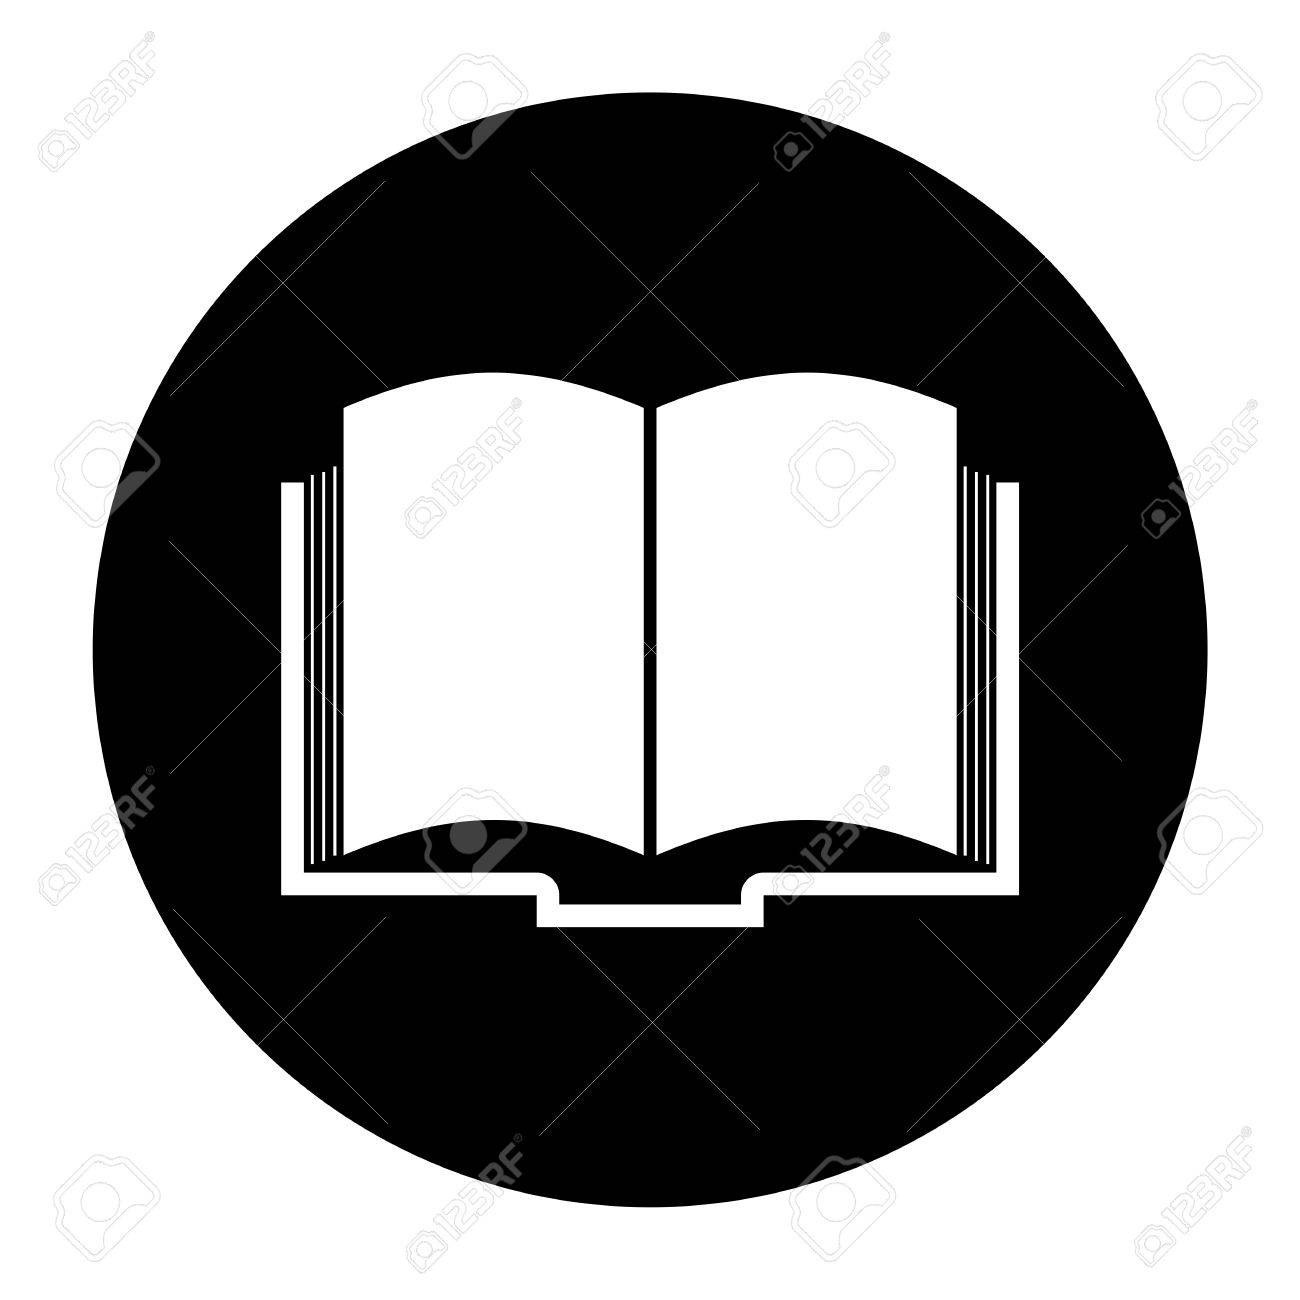 book icon black circle royalty free cliparts vectors and stock rh 123rf com book vector icon free book vector icon png